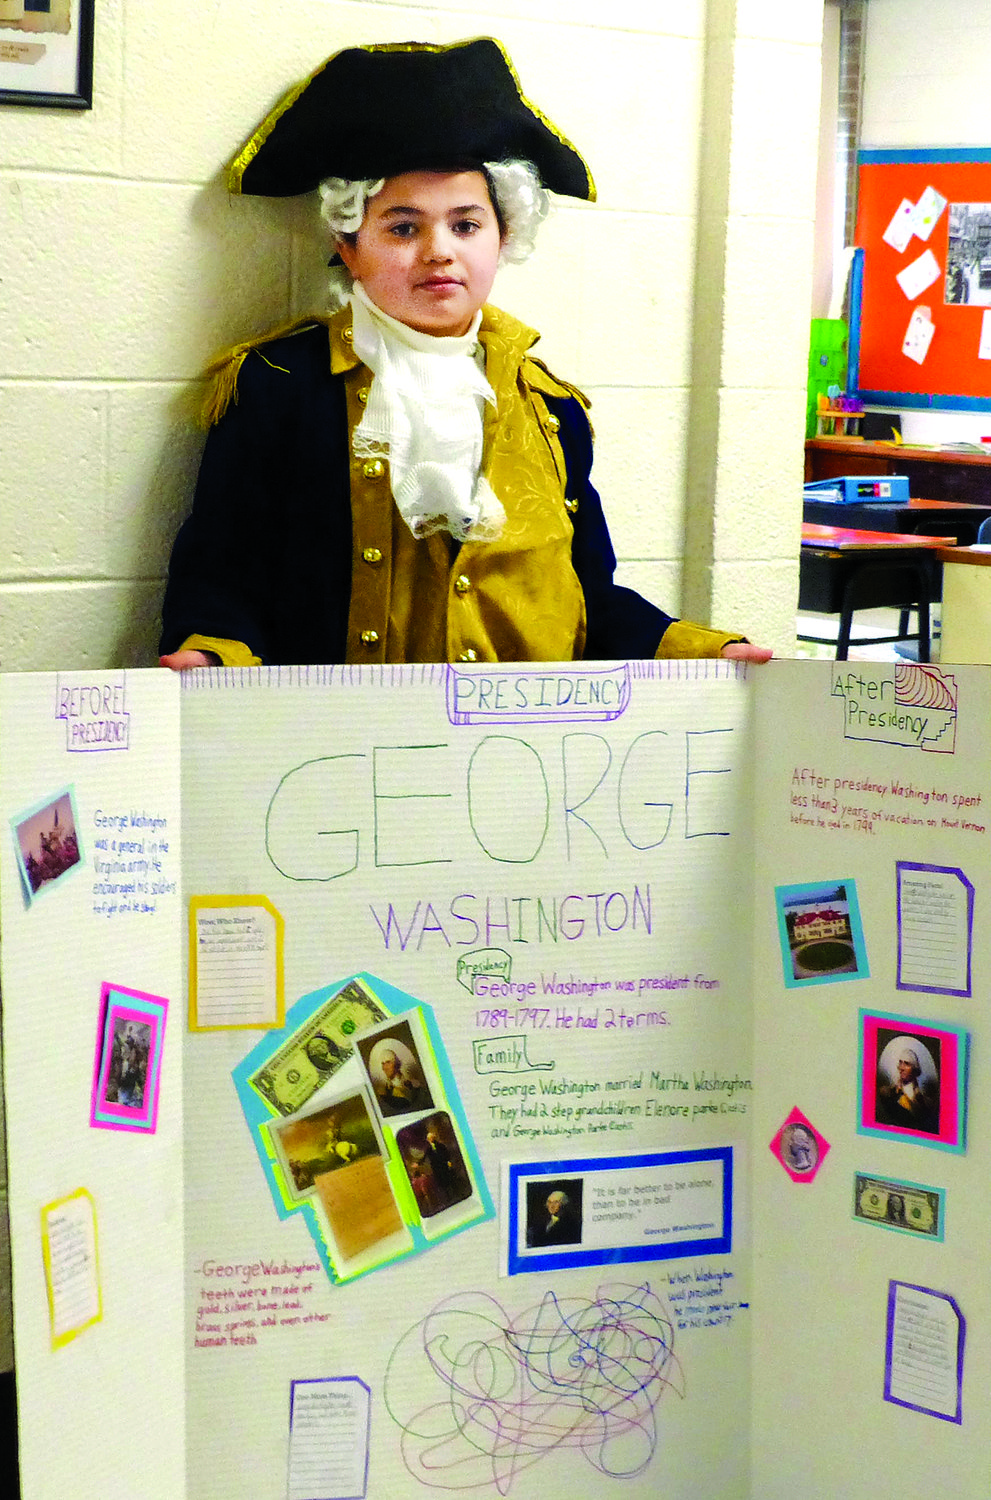 George Washington (Eliyahu Minkin) with a display about this life.